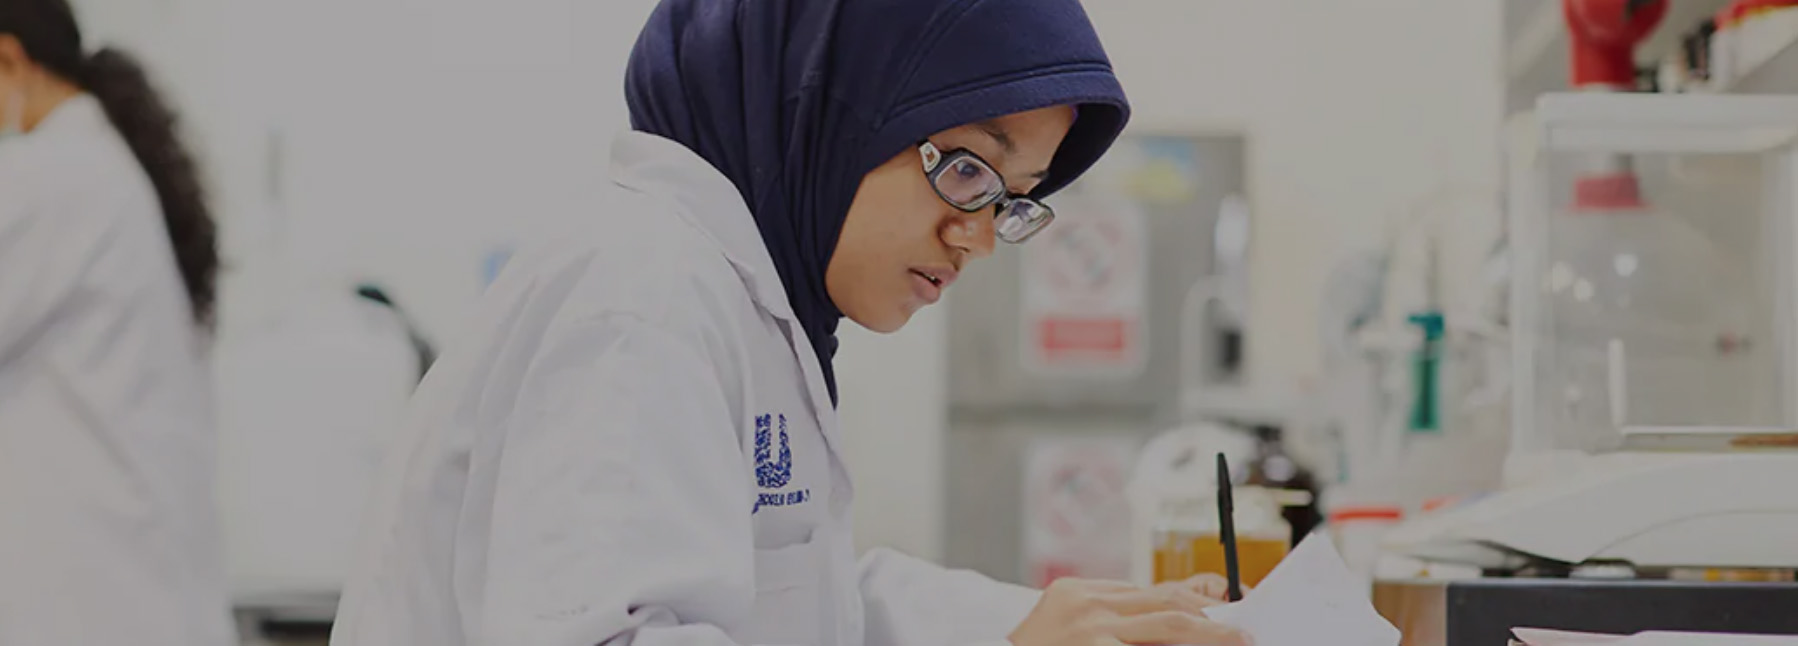 Diversity and Inclusion photo showing lady working in a laboratory